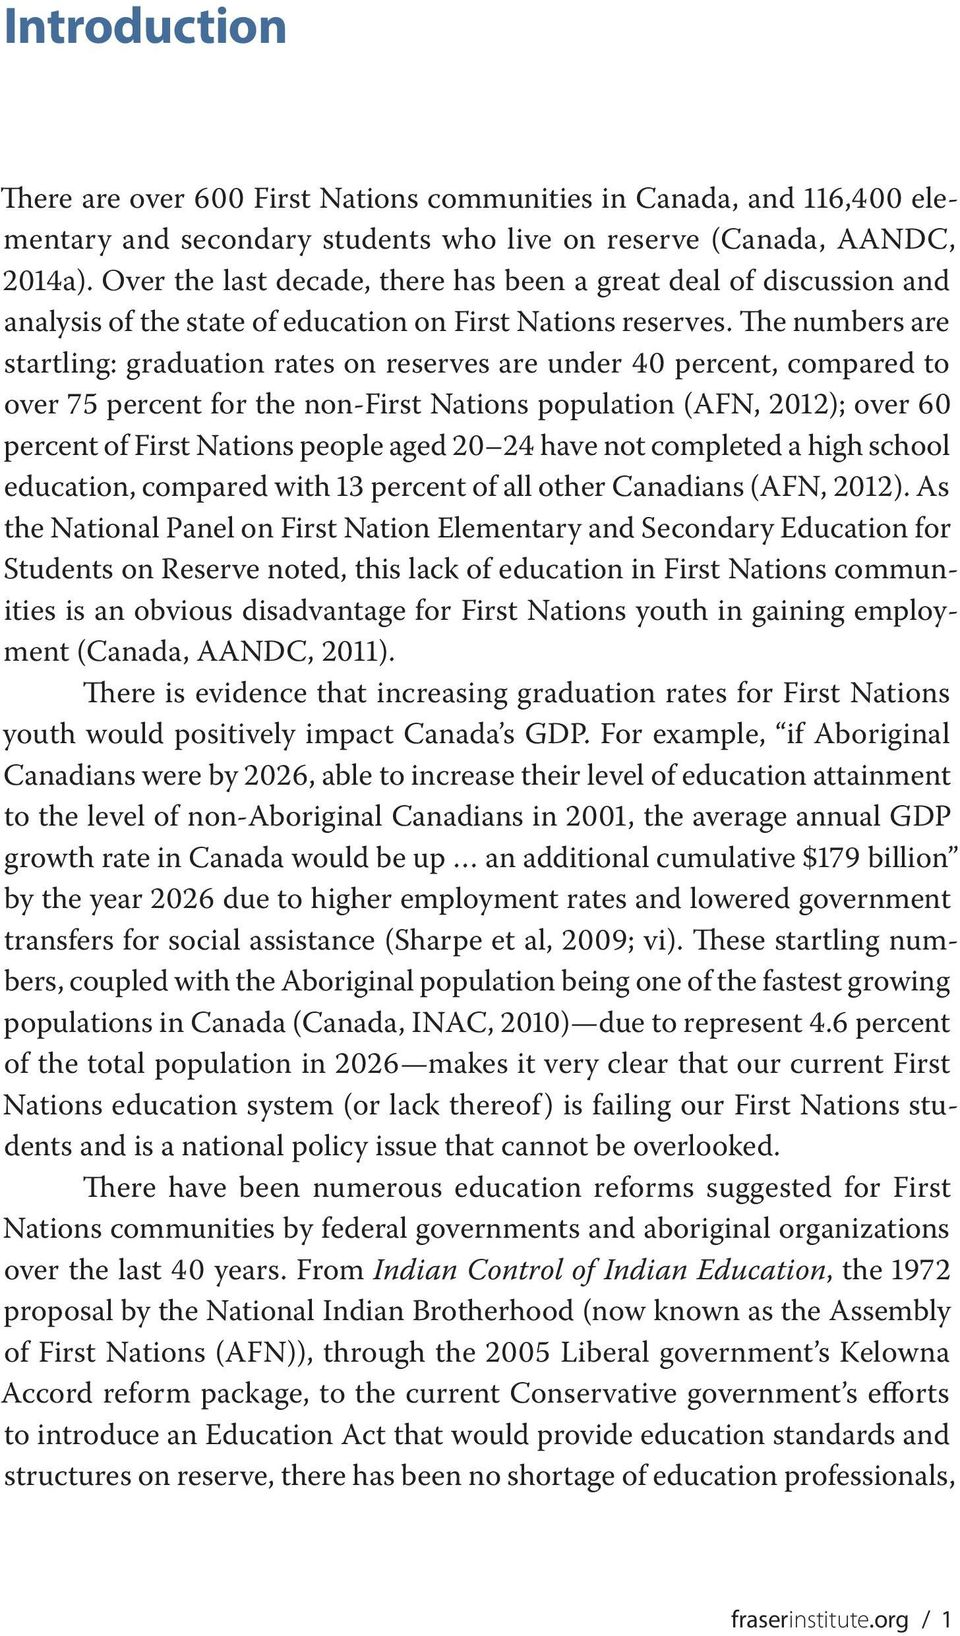 The numbers are startling: graduation rates on reserves are under 40 percent, compared to over 75 percent for the non-first Nations population (AFN, 2012); over 60 percent of First Nations people